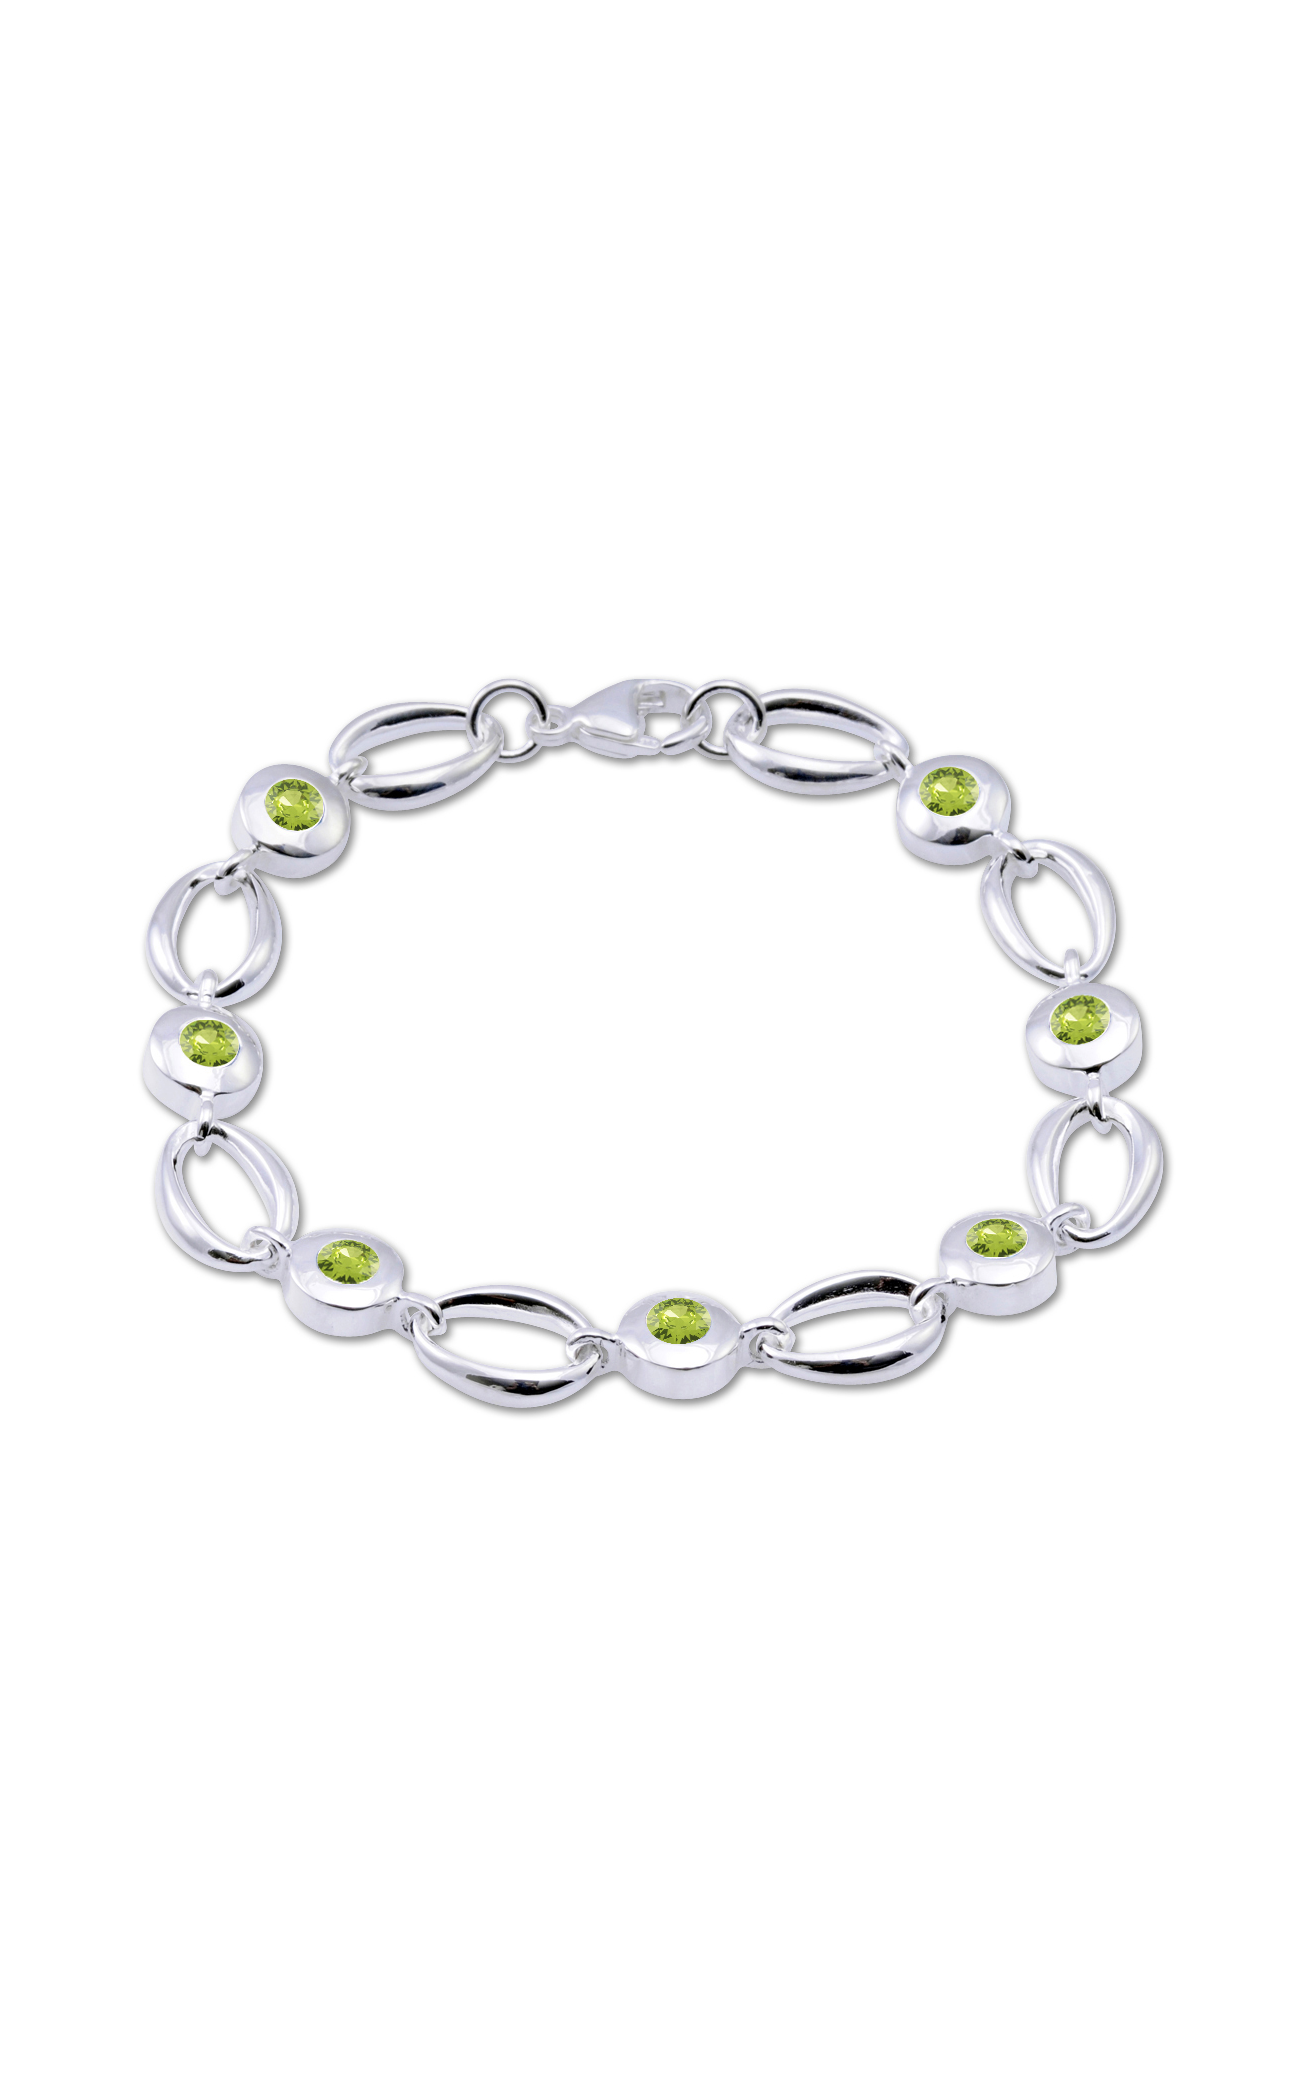 Zina Contemporary Bracelet A325-7-P product image